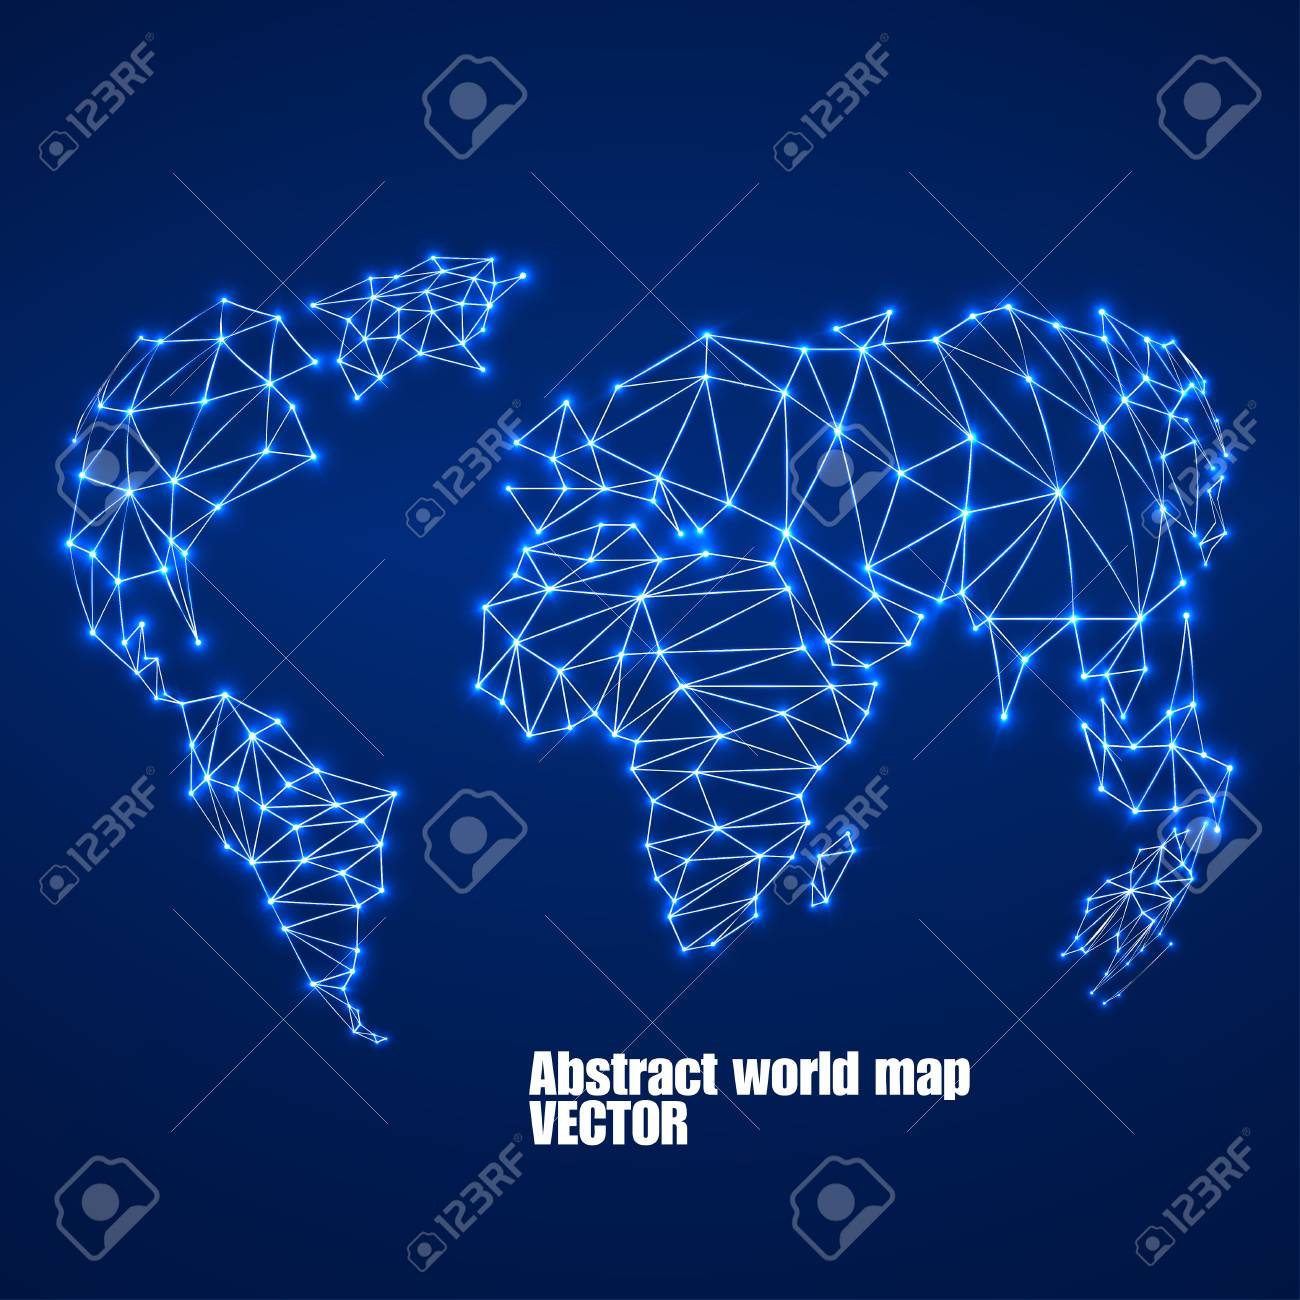 Abstract polygonal world map with glowing dots and lines network abstract polygonal world map with glowing dots and lines network connections vector illustration gumiabroncs Choice Image